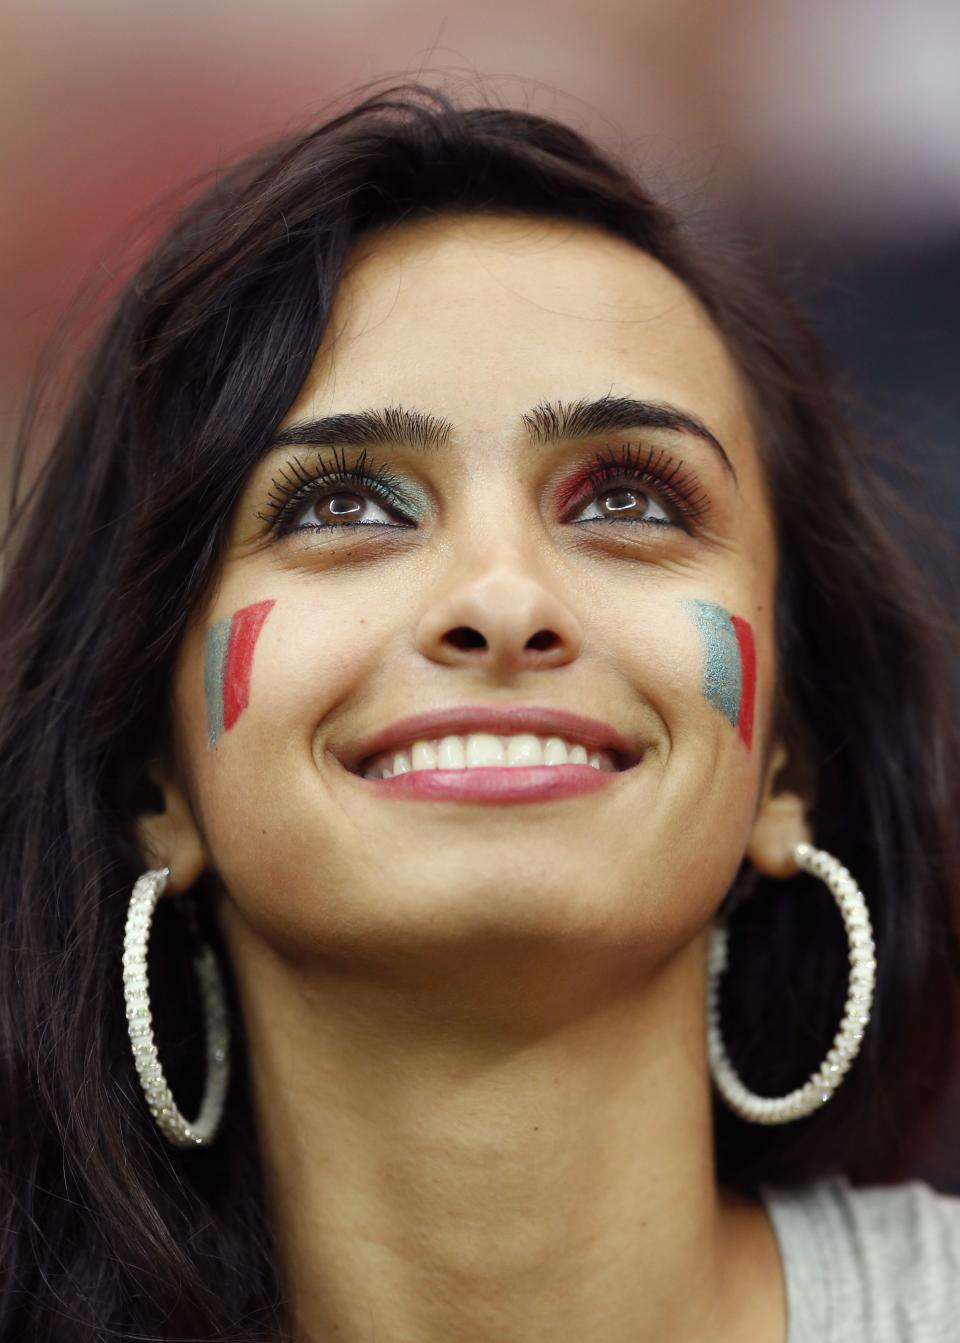 A Czech fan smiles before the Euro 2012 soccer championship quarterfinal match between Czech Republic and Portugal in Warsaw, Poland, Thursday, June 21, 2012. (AP Photo/Jon Super)